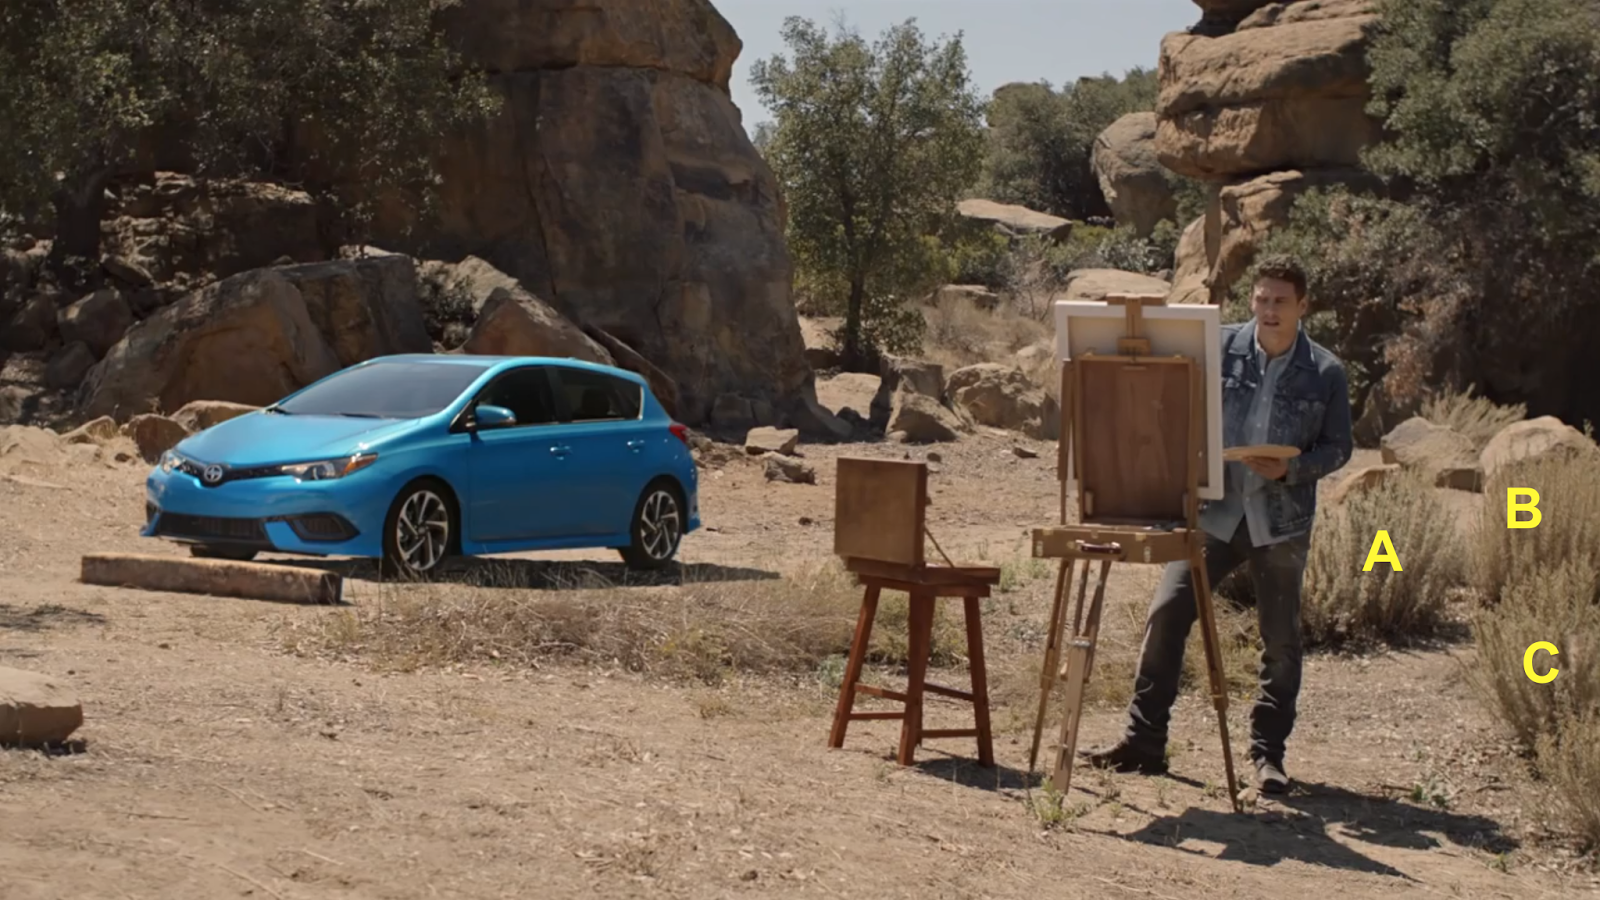 Iverson Movie Ranch: Are car commercials the new B-Westerns?